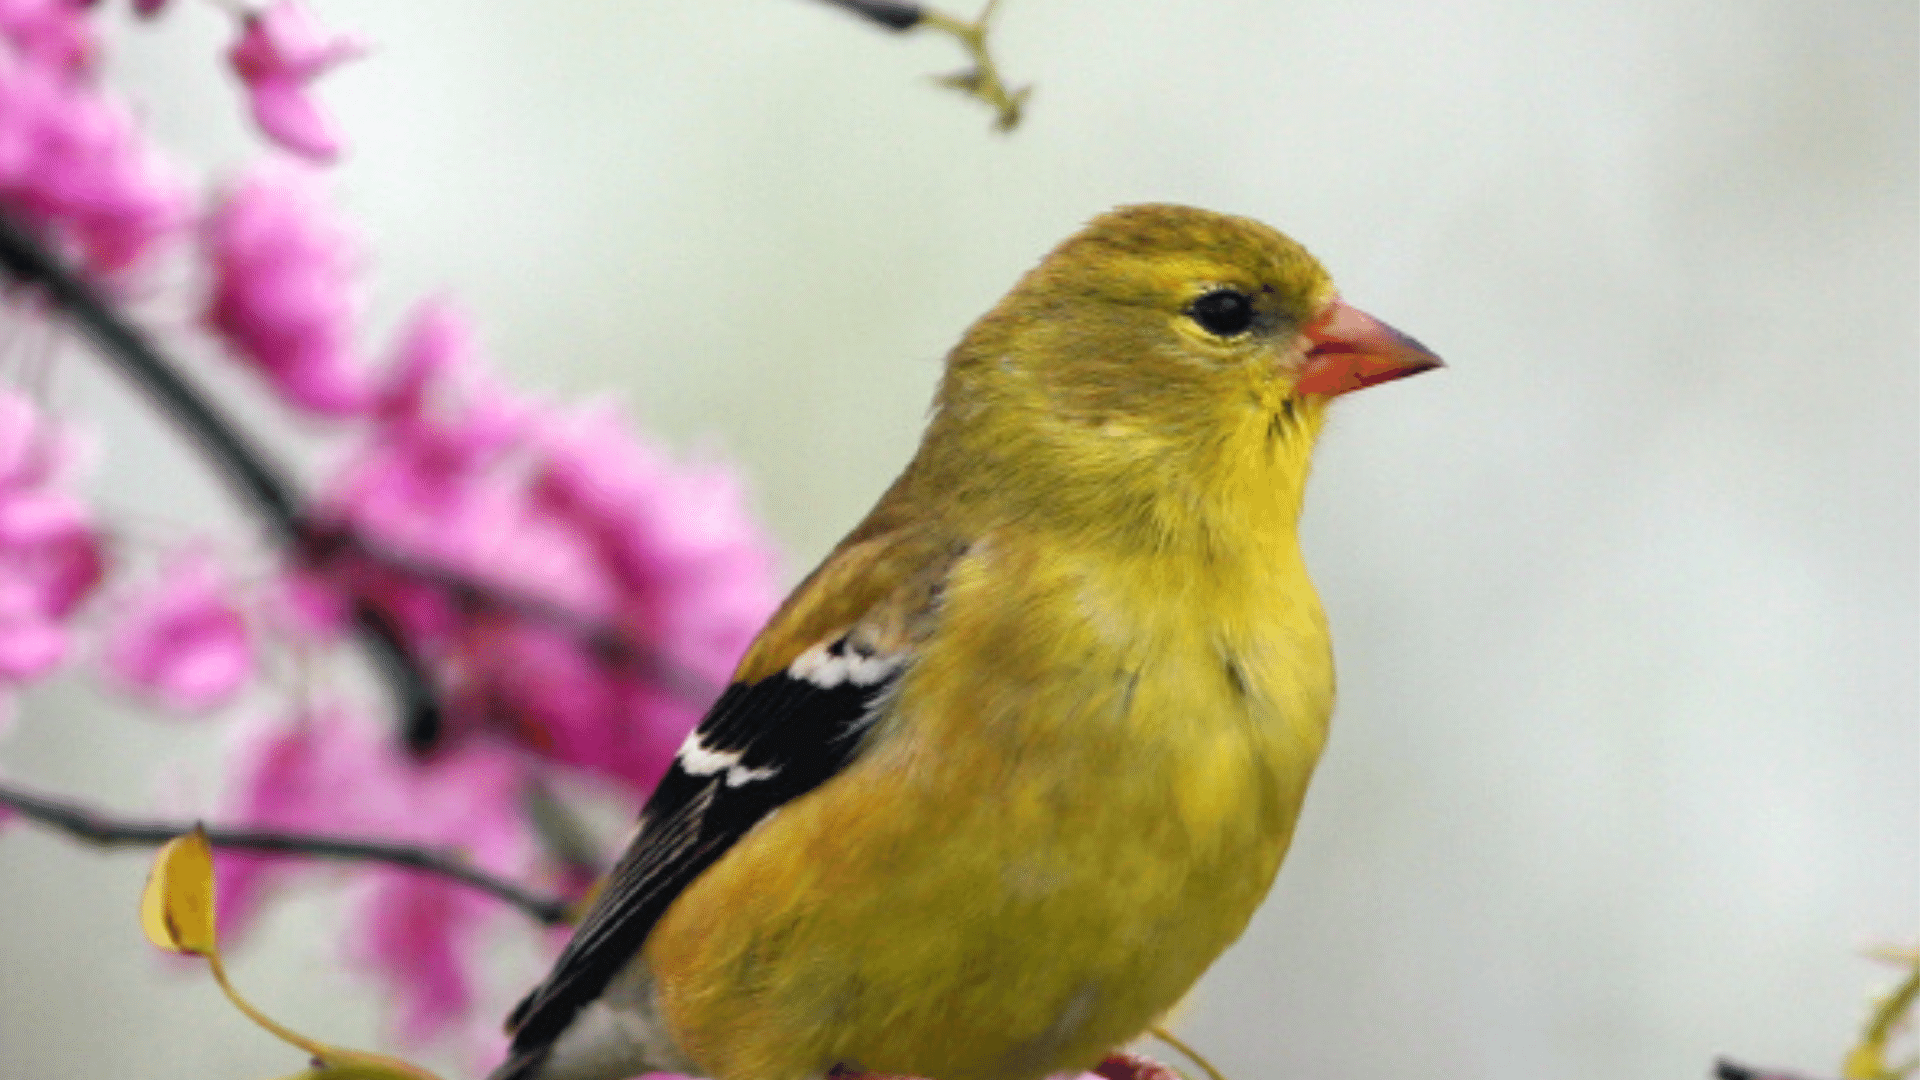 Image of an American Goldfinch